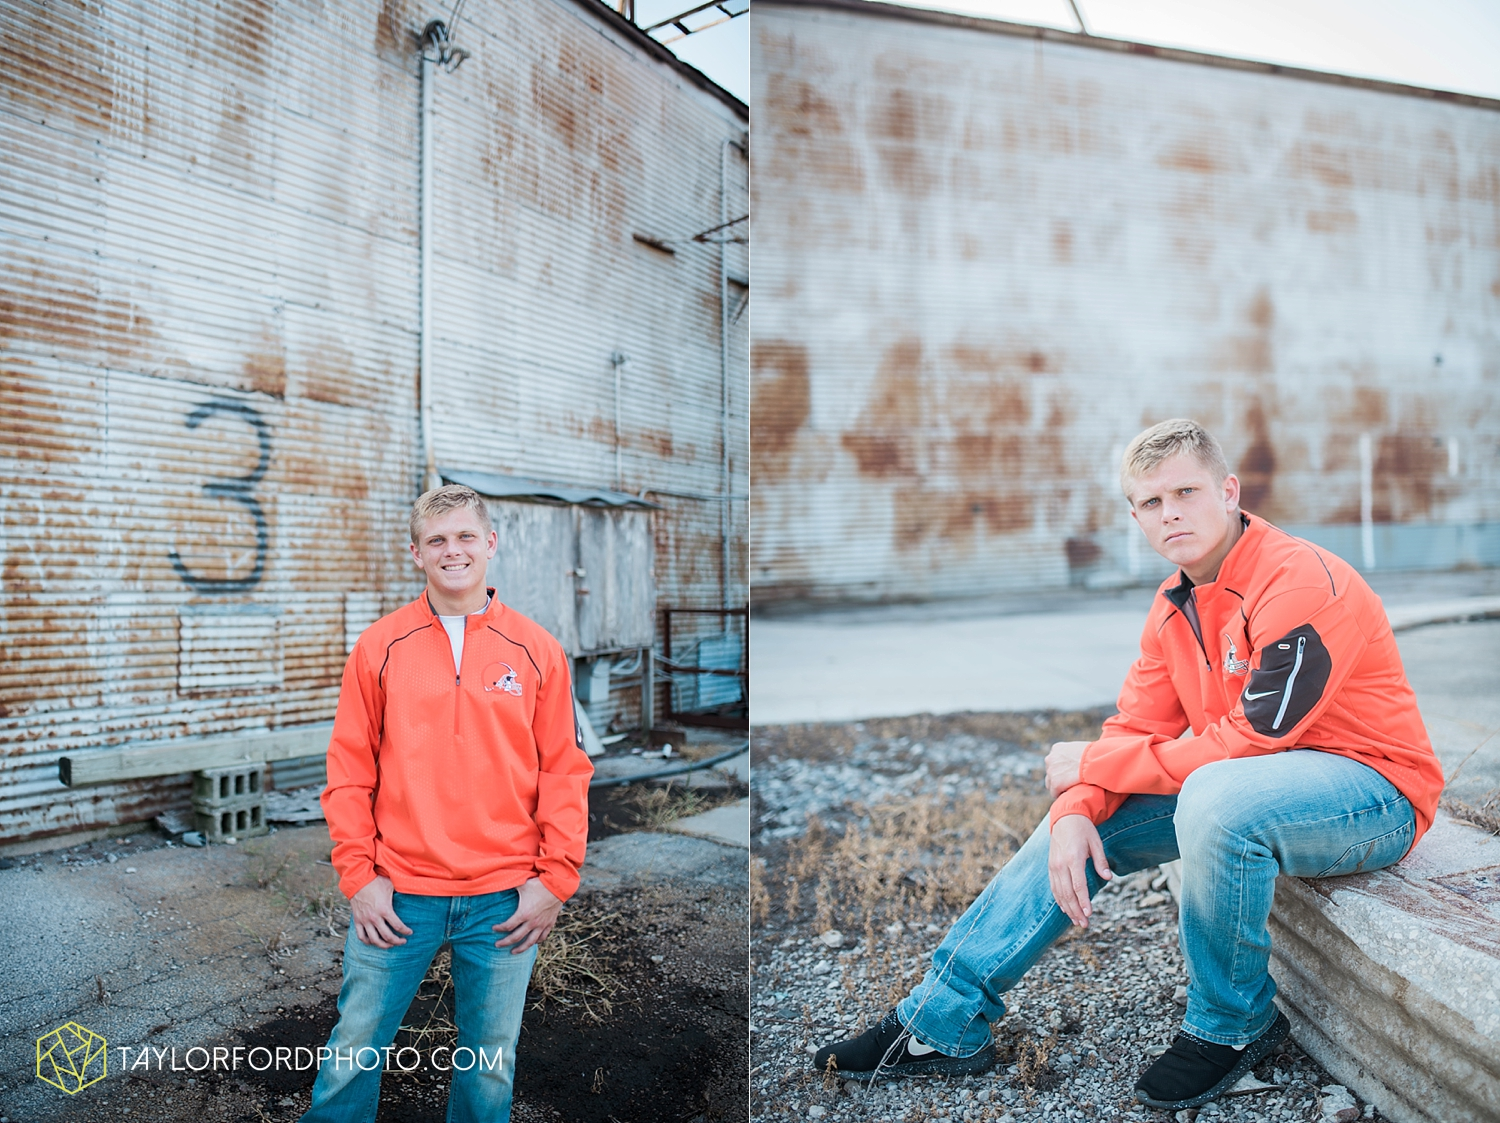 van_wert_ohio_senior_photographer_taylor_ford_crestview_knights_fort_wayne_indiana_2744.jpg